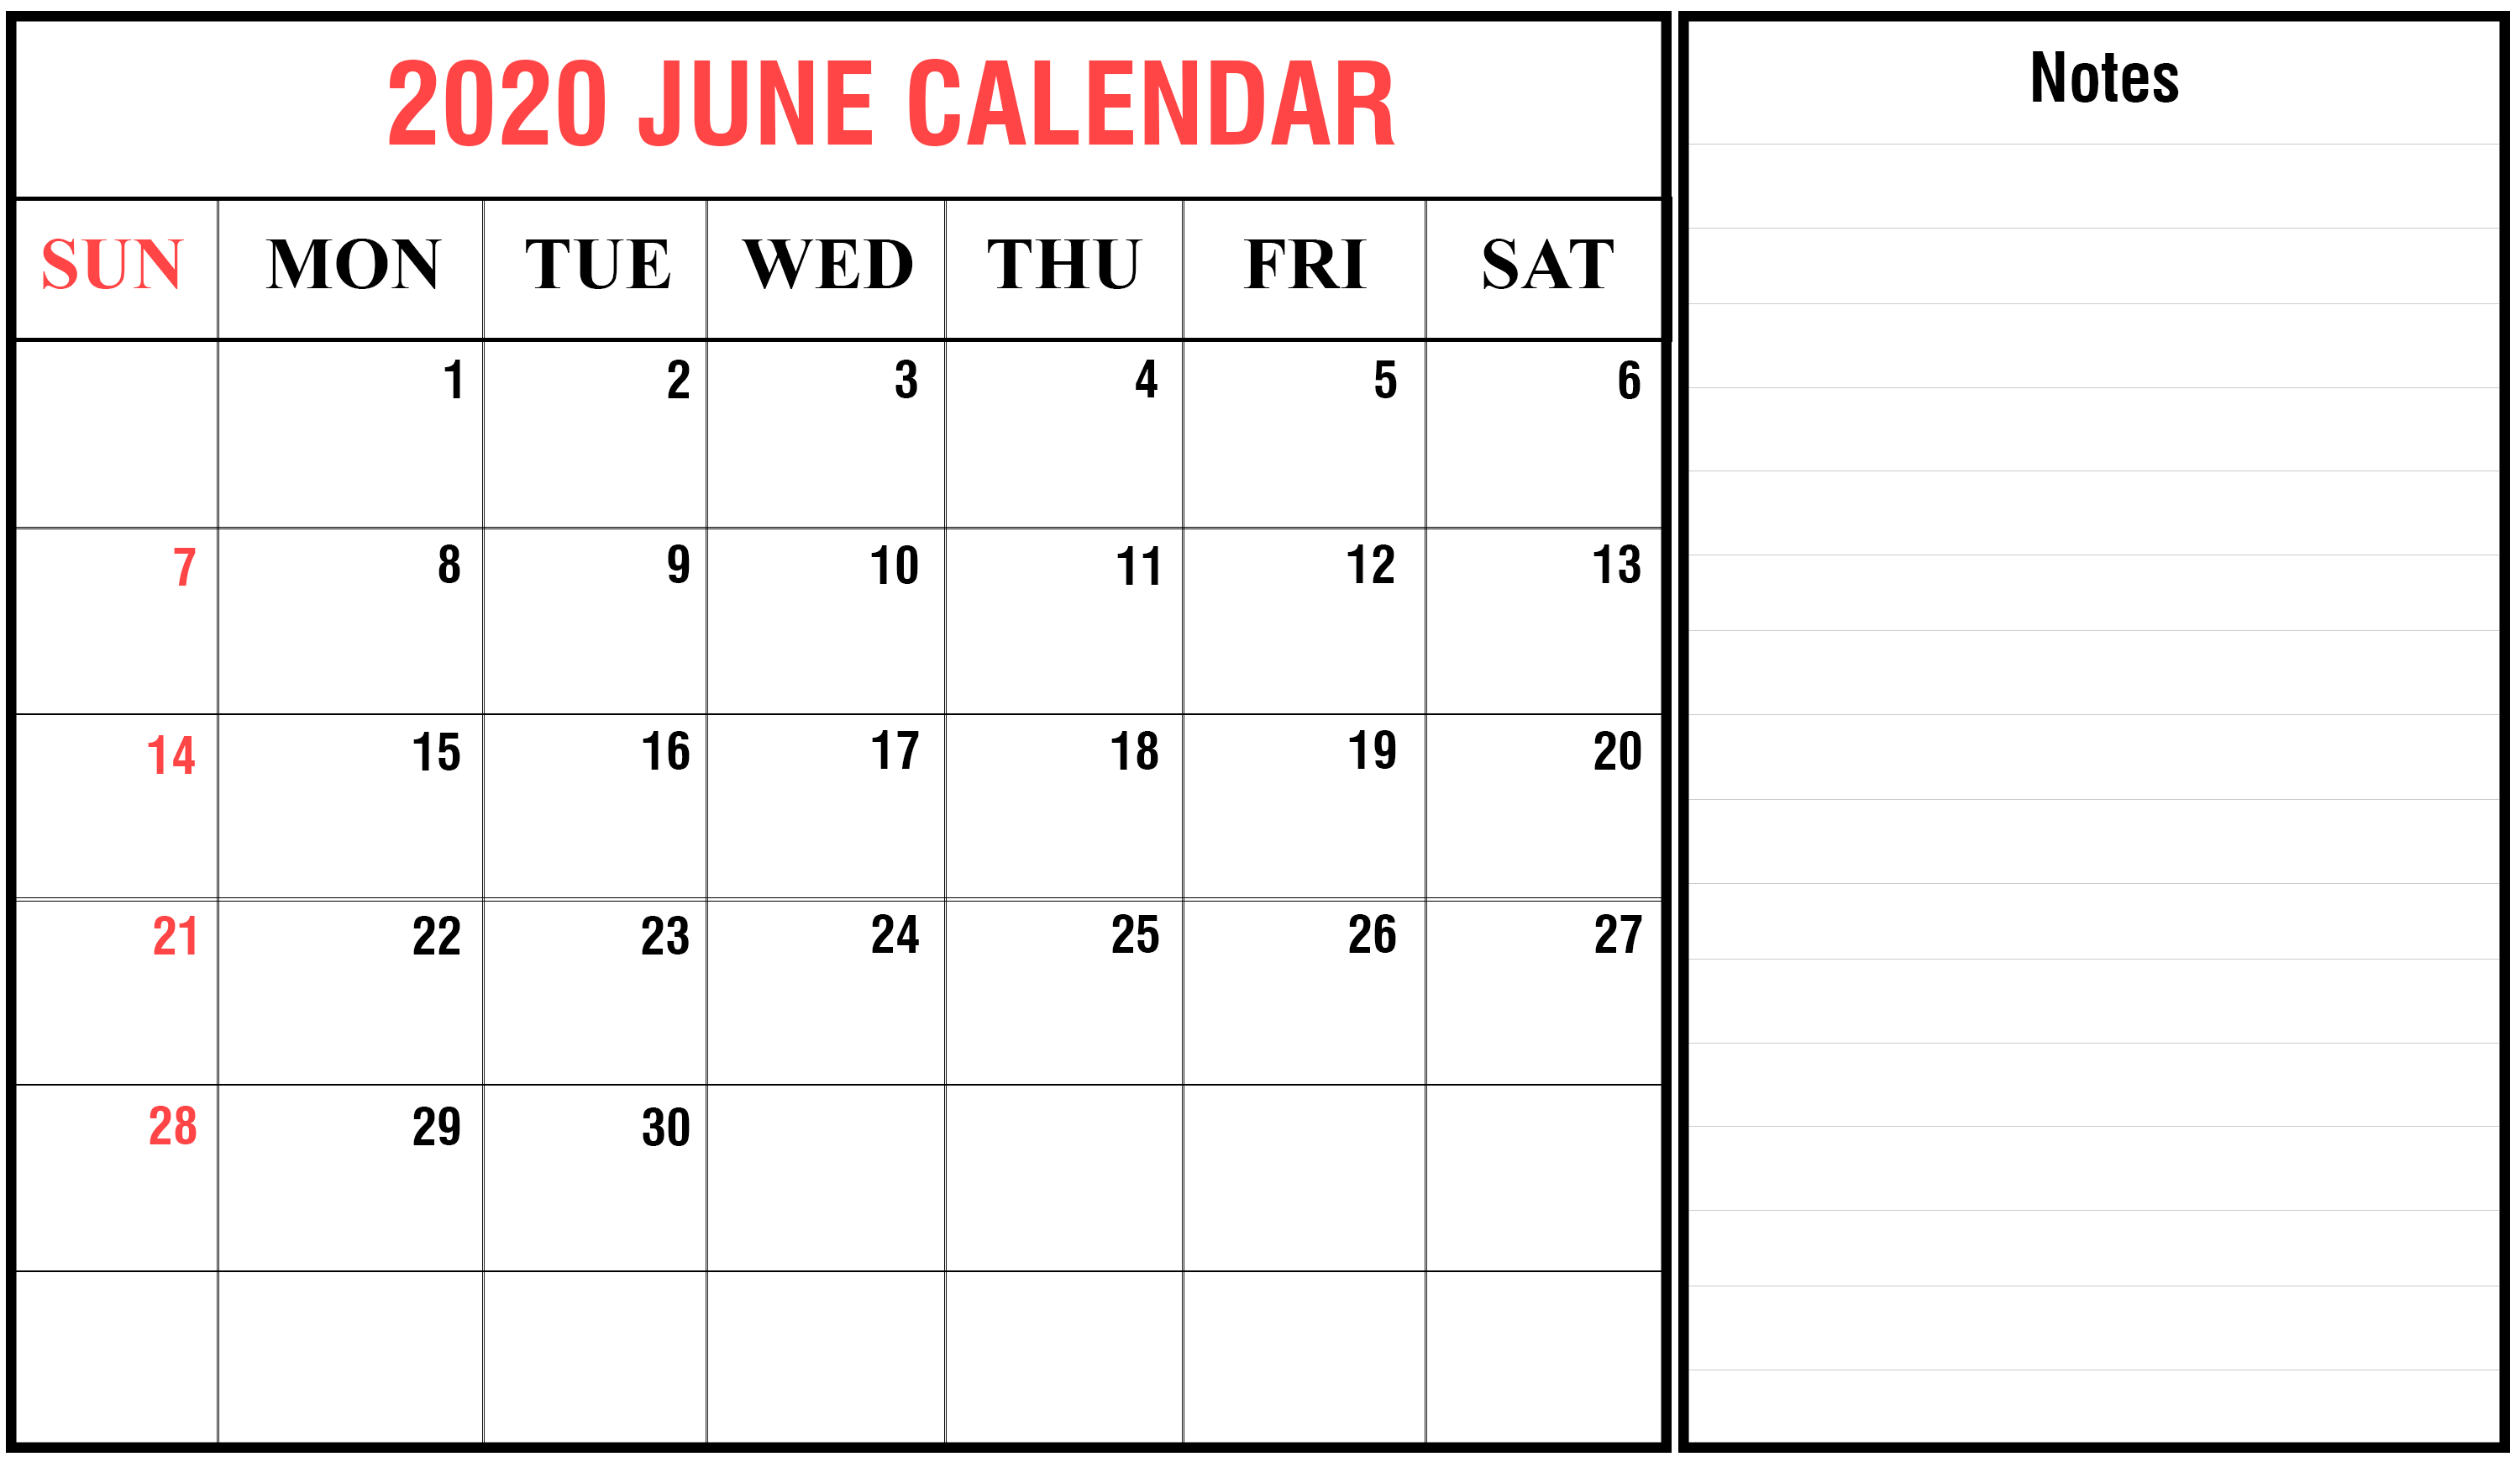 Editable June 2020 Calendar with Notes